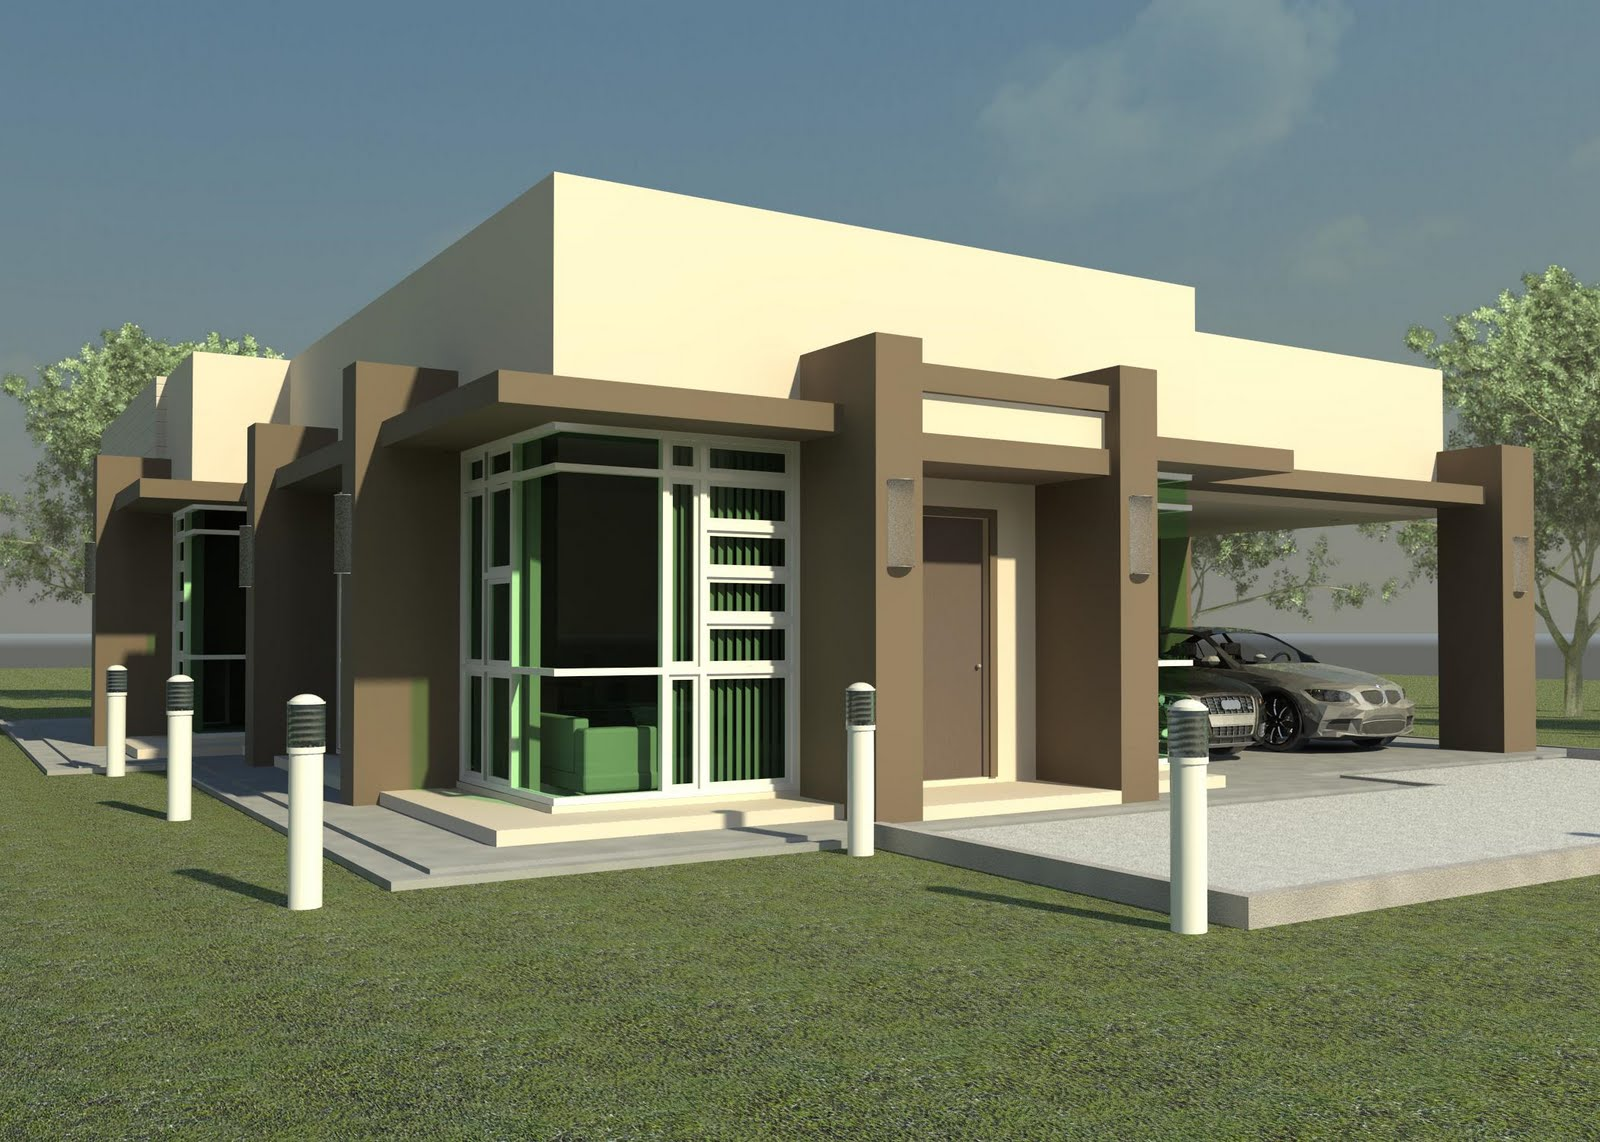 New home designs latest modern small homes designs exterior for The new small house